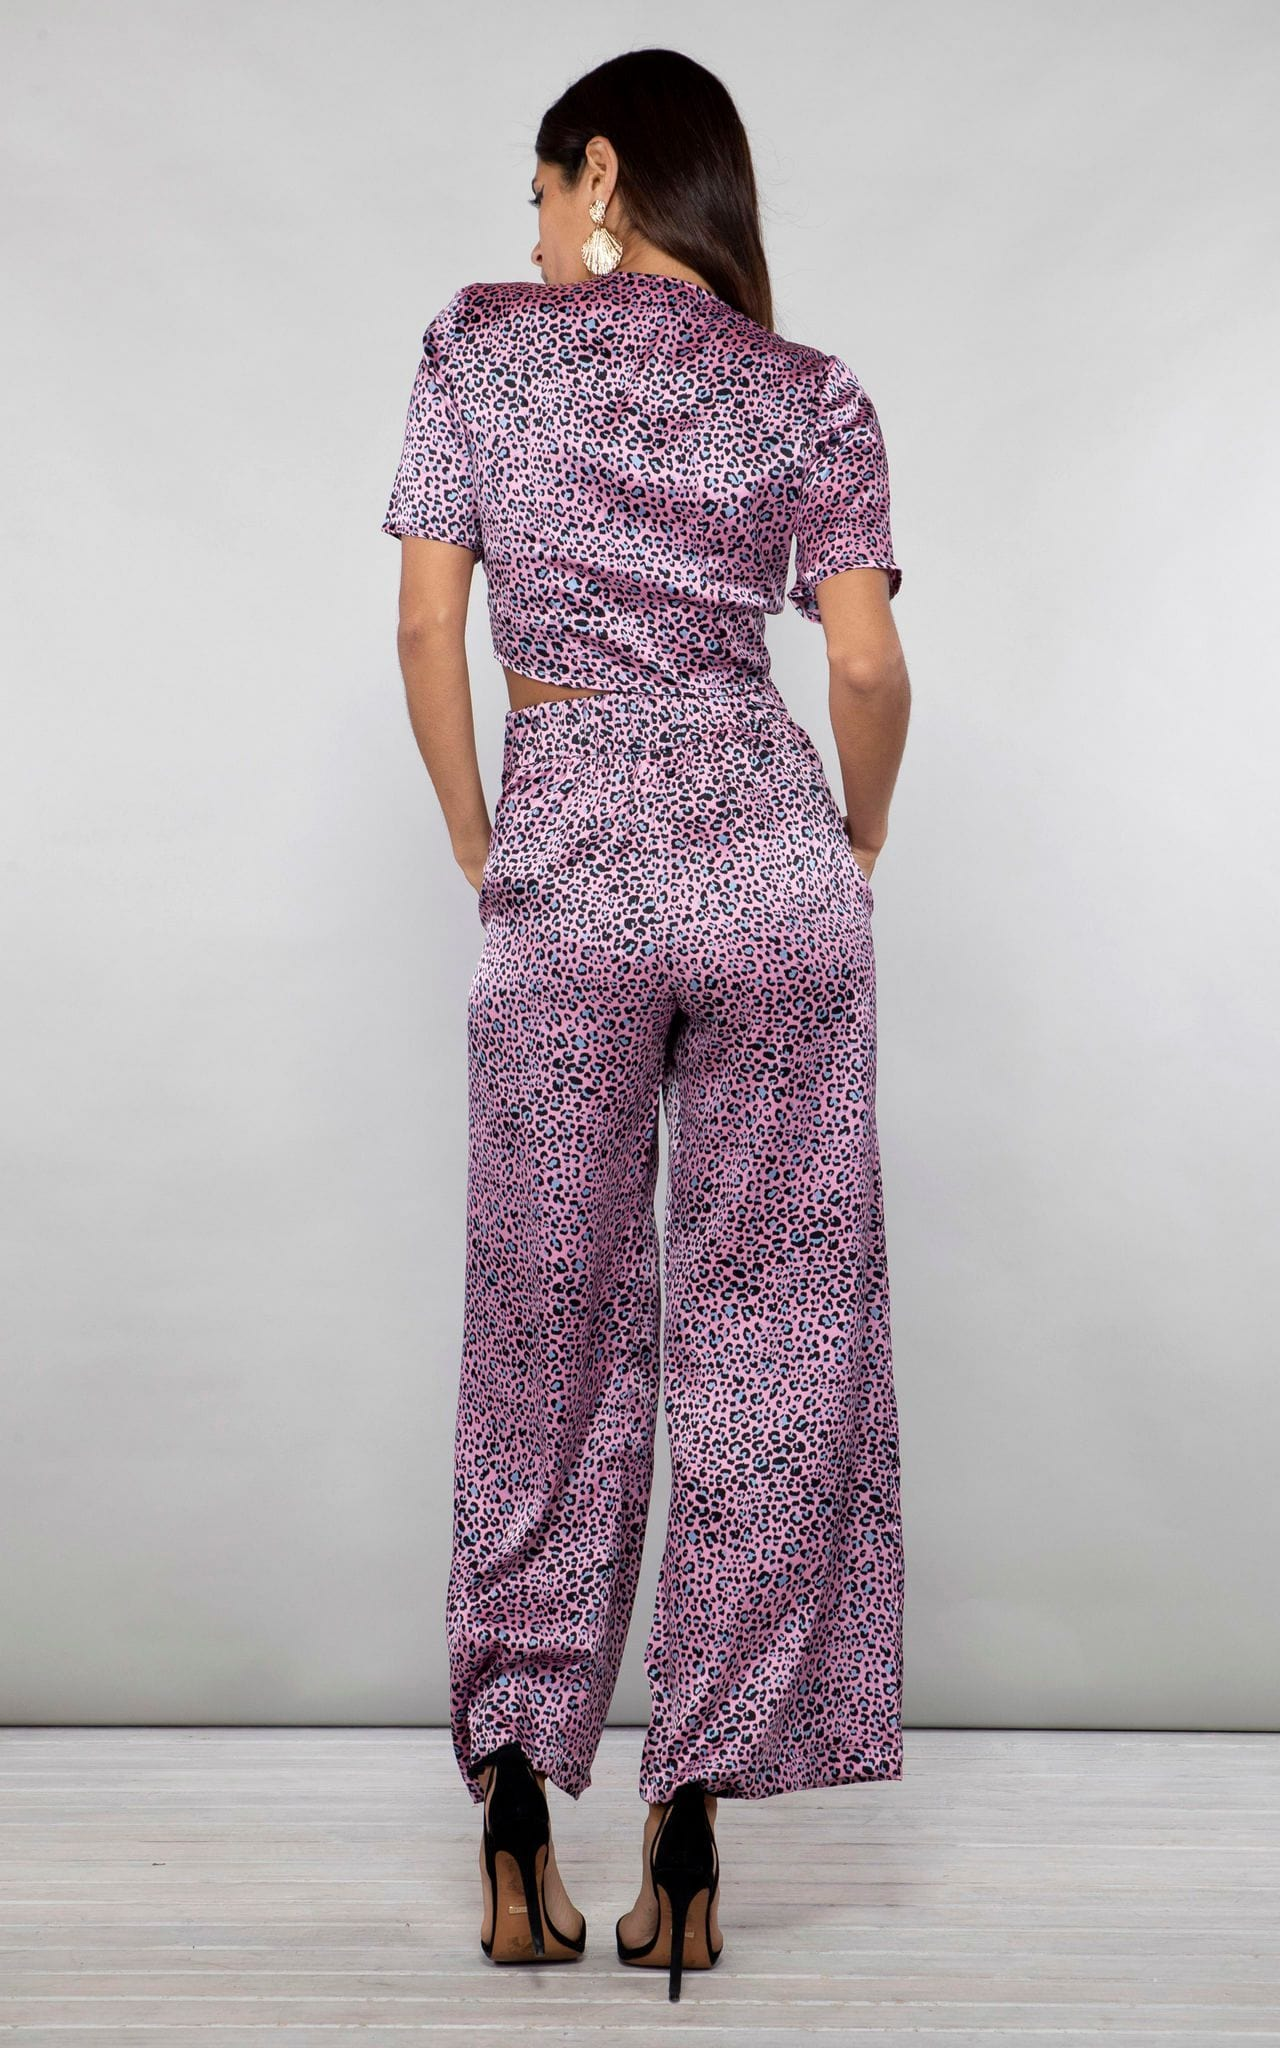 Backward-facing model with hands in pockets wears Chinchilla Trousers in pink leopard print